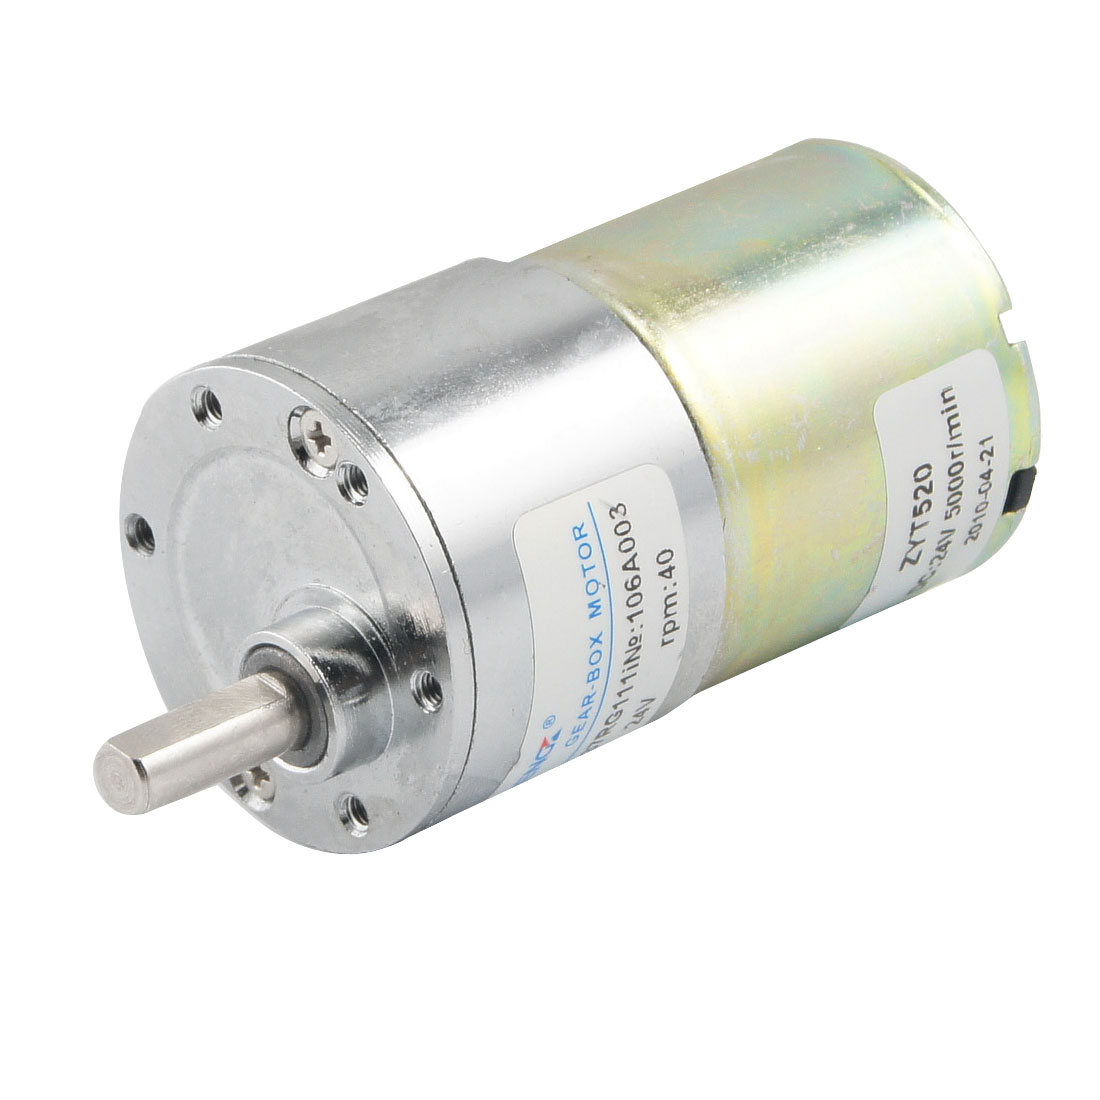 40RPM Output Speed 36mm Diameter 24V 0.33A DC Geared Motor